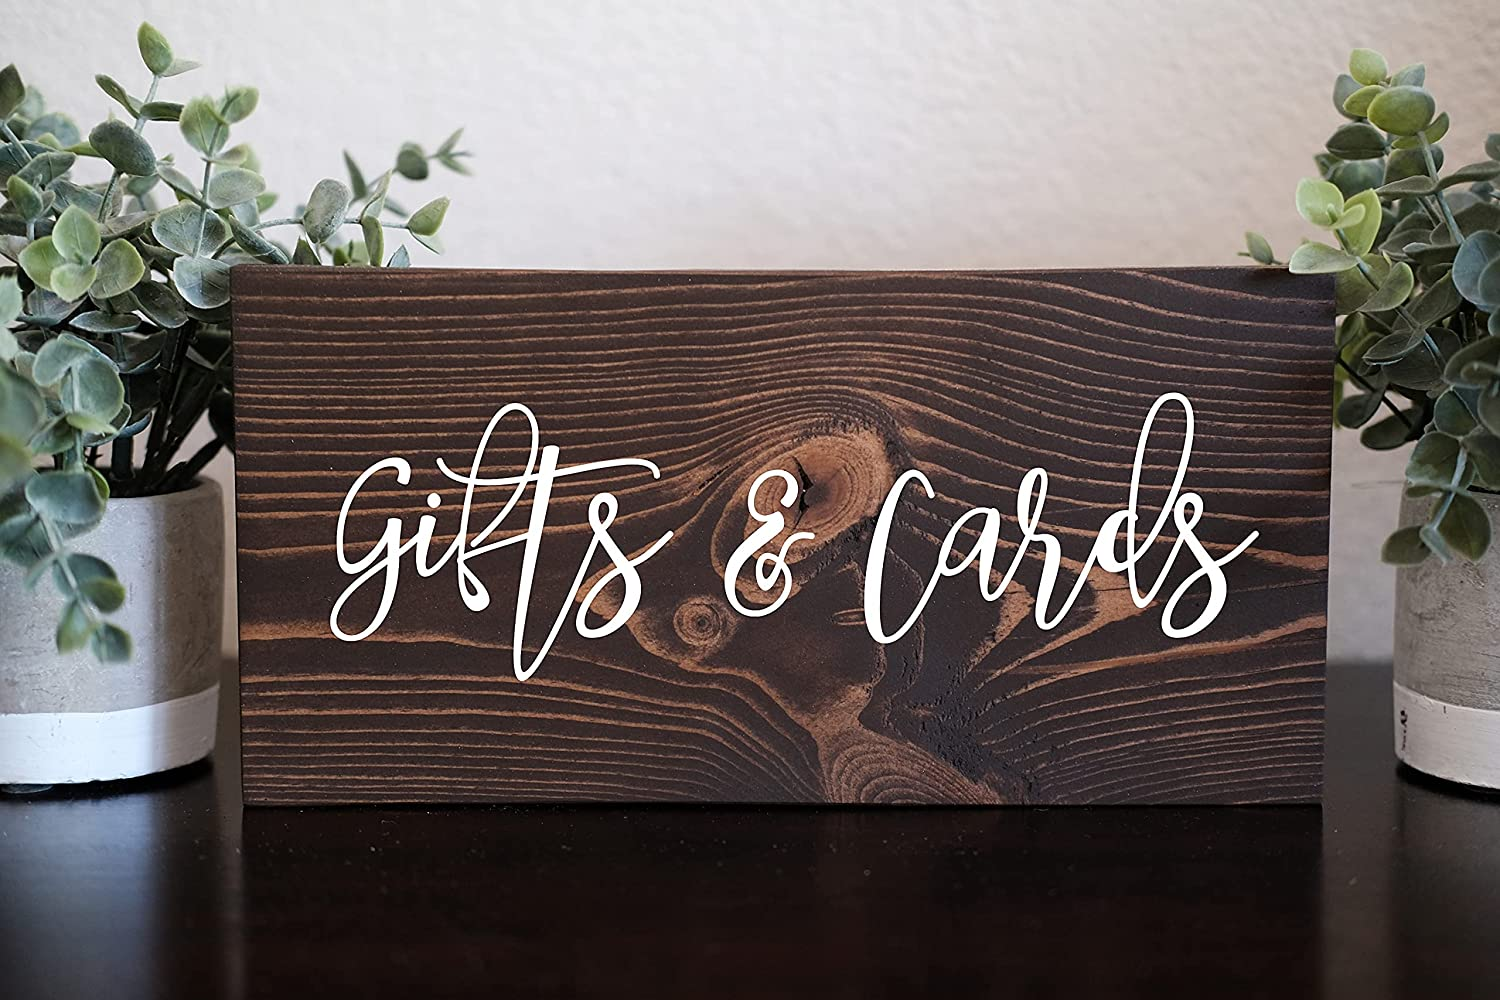 Diuangfoong 6 inches x 20 inches 1pc Wedding Date Sign, Wedding Signs, Wedding Wooden Sign, Wood Signs Wedding, Wedding Entrance Sign, Rustic Wedding Decor, Wedding Welcome Sign